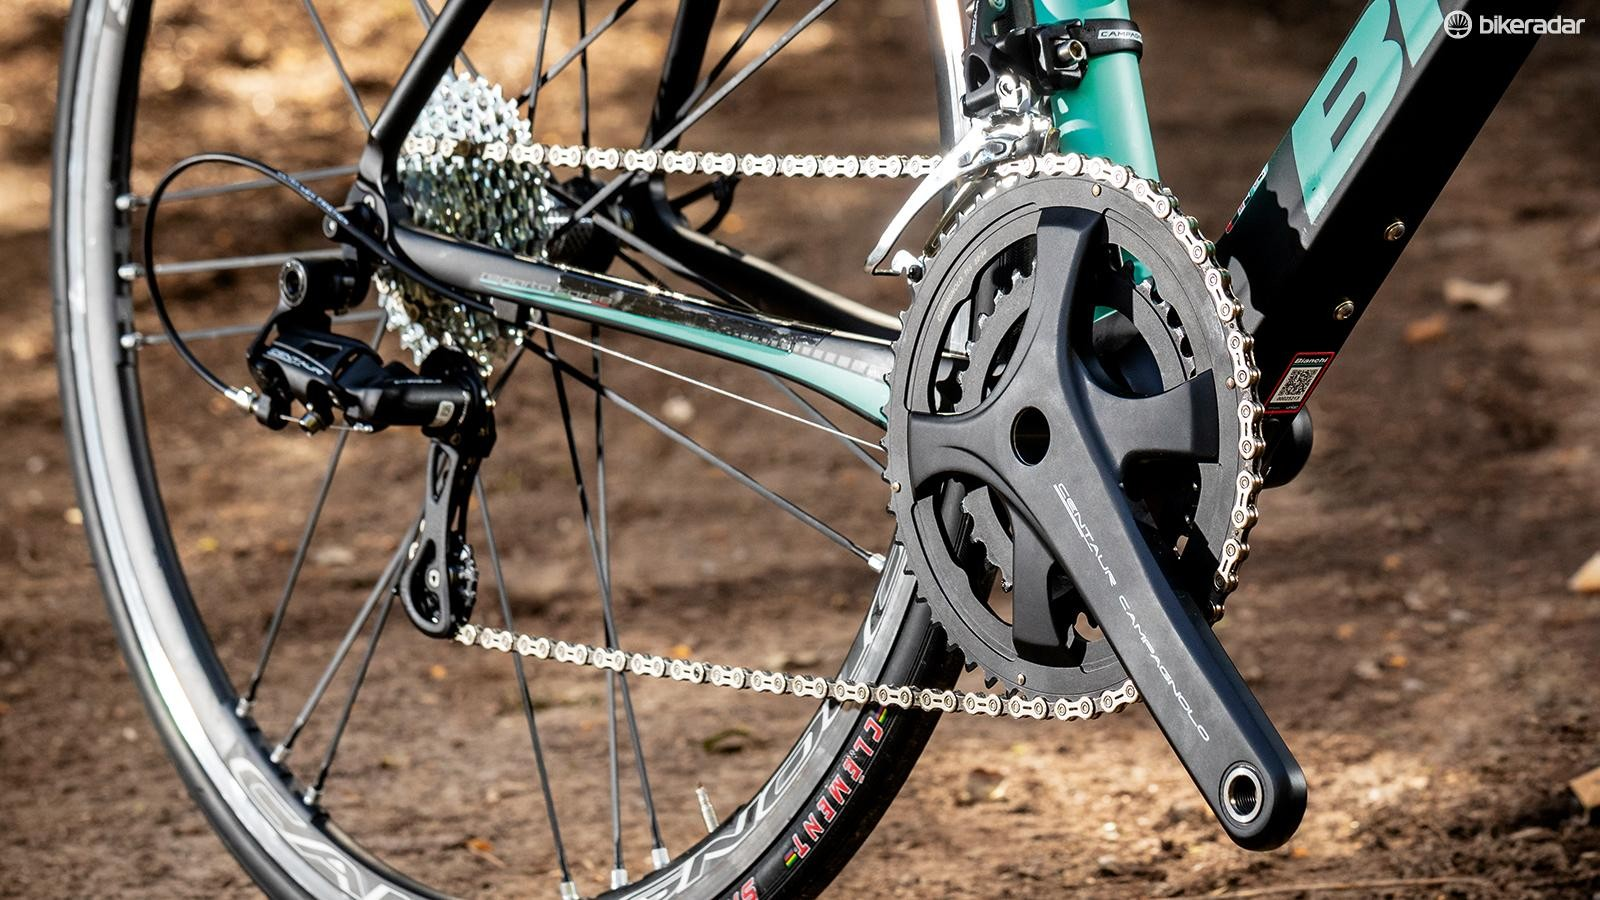 Chainring options are 50/34 and 52/36